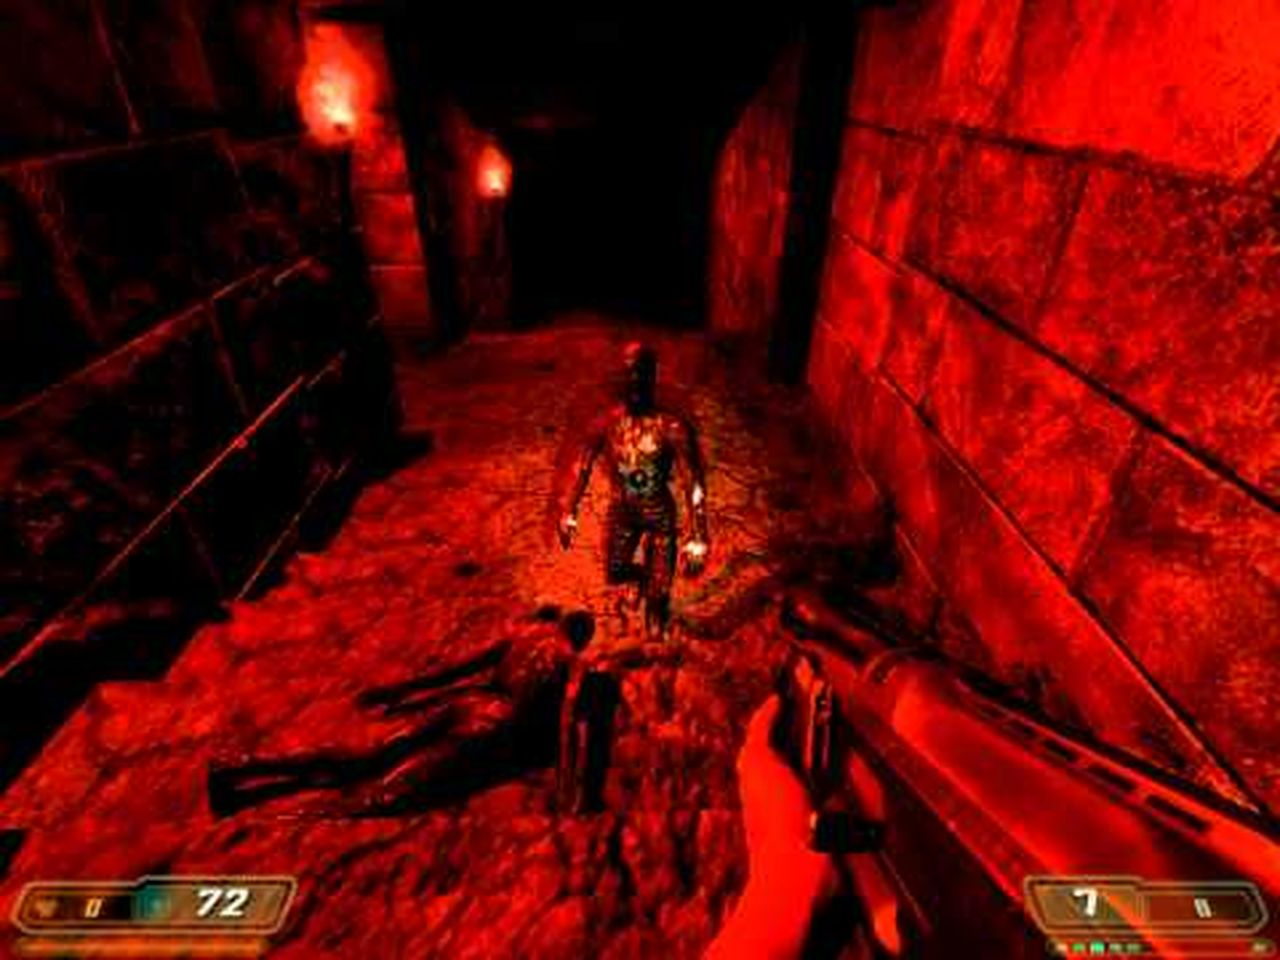 Hqdefault 1 Image Facets Of Reality Dilogy Mod For Doom Iii Hqdefaultjpg Report Rss View Original